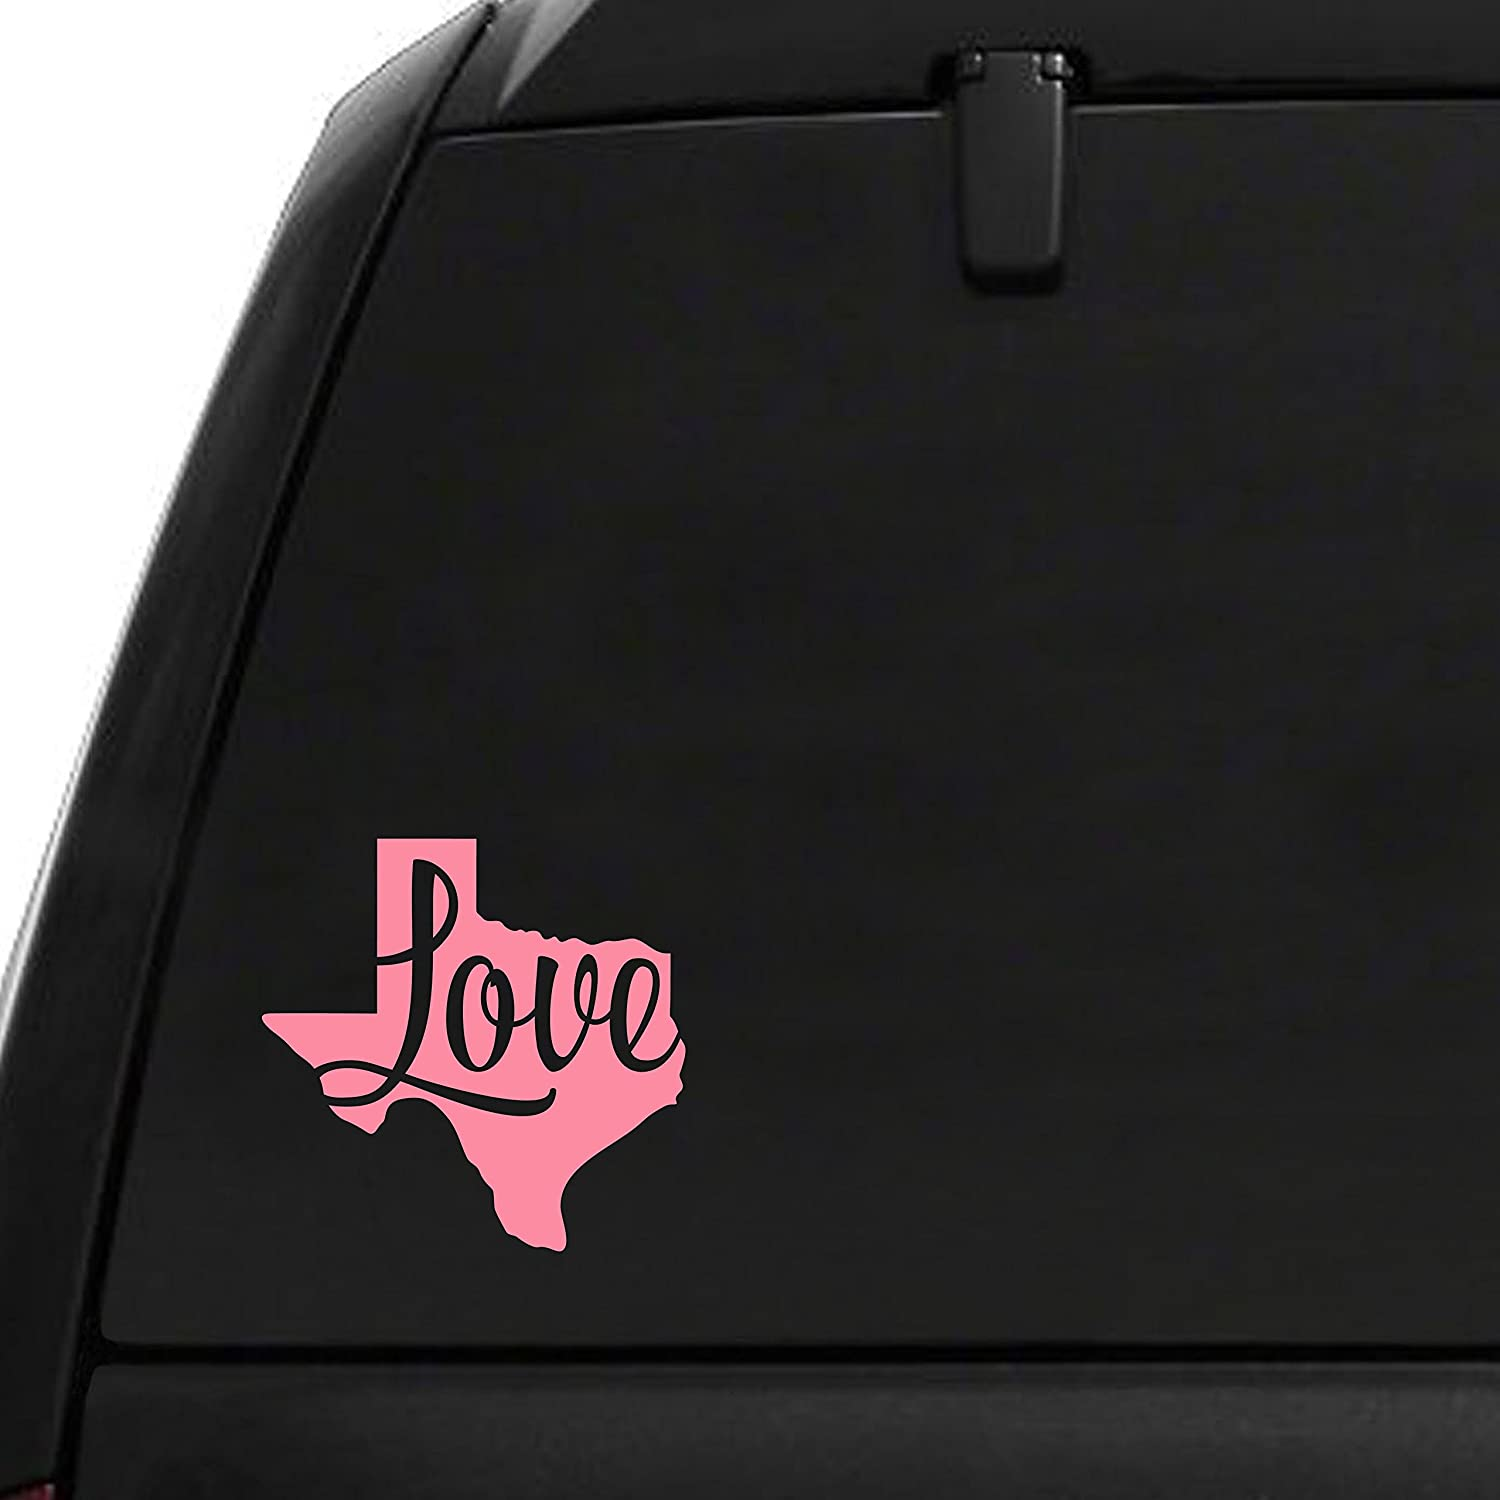 Love Texas Car Decal 4 x 4 Inches Pink Vinyl Texas Car Sticker